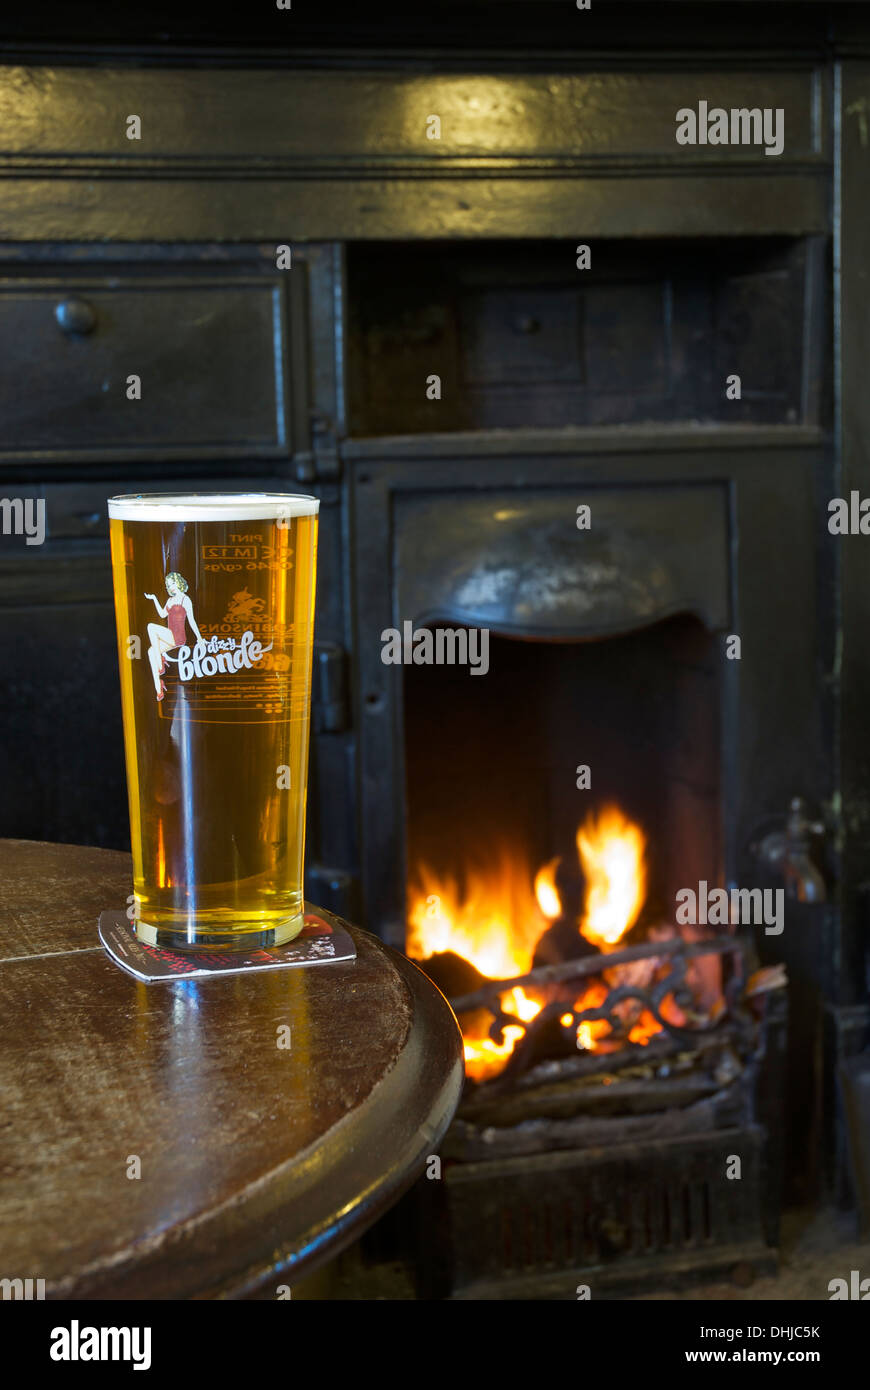 A pint of Robinson's Dizzy Blonde pale beer, in a pub with an open fire - Stock Image